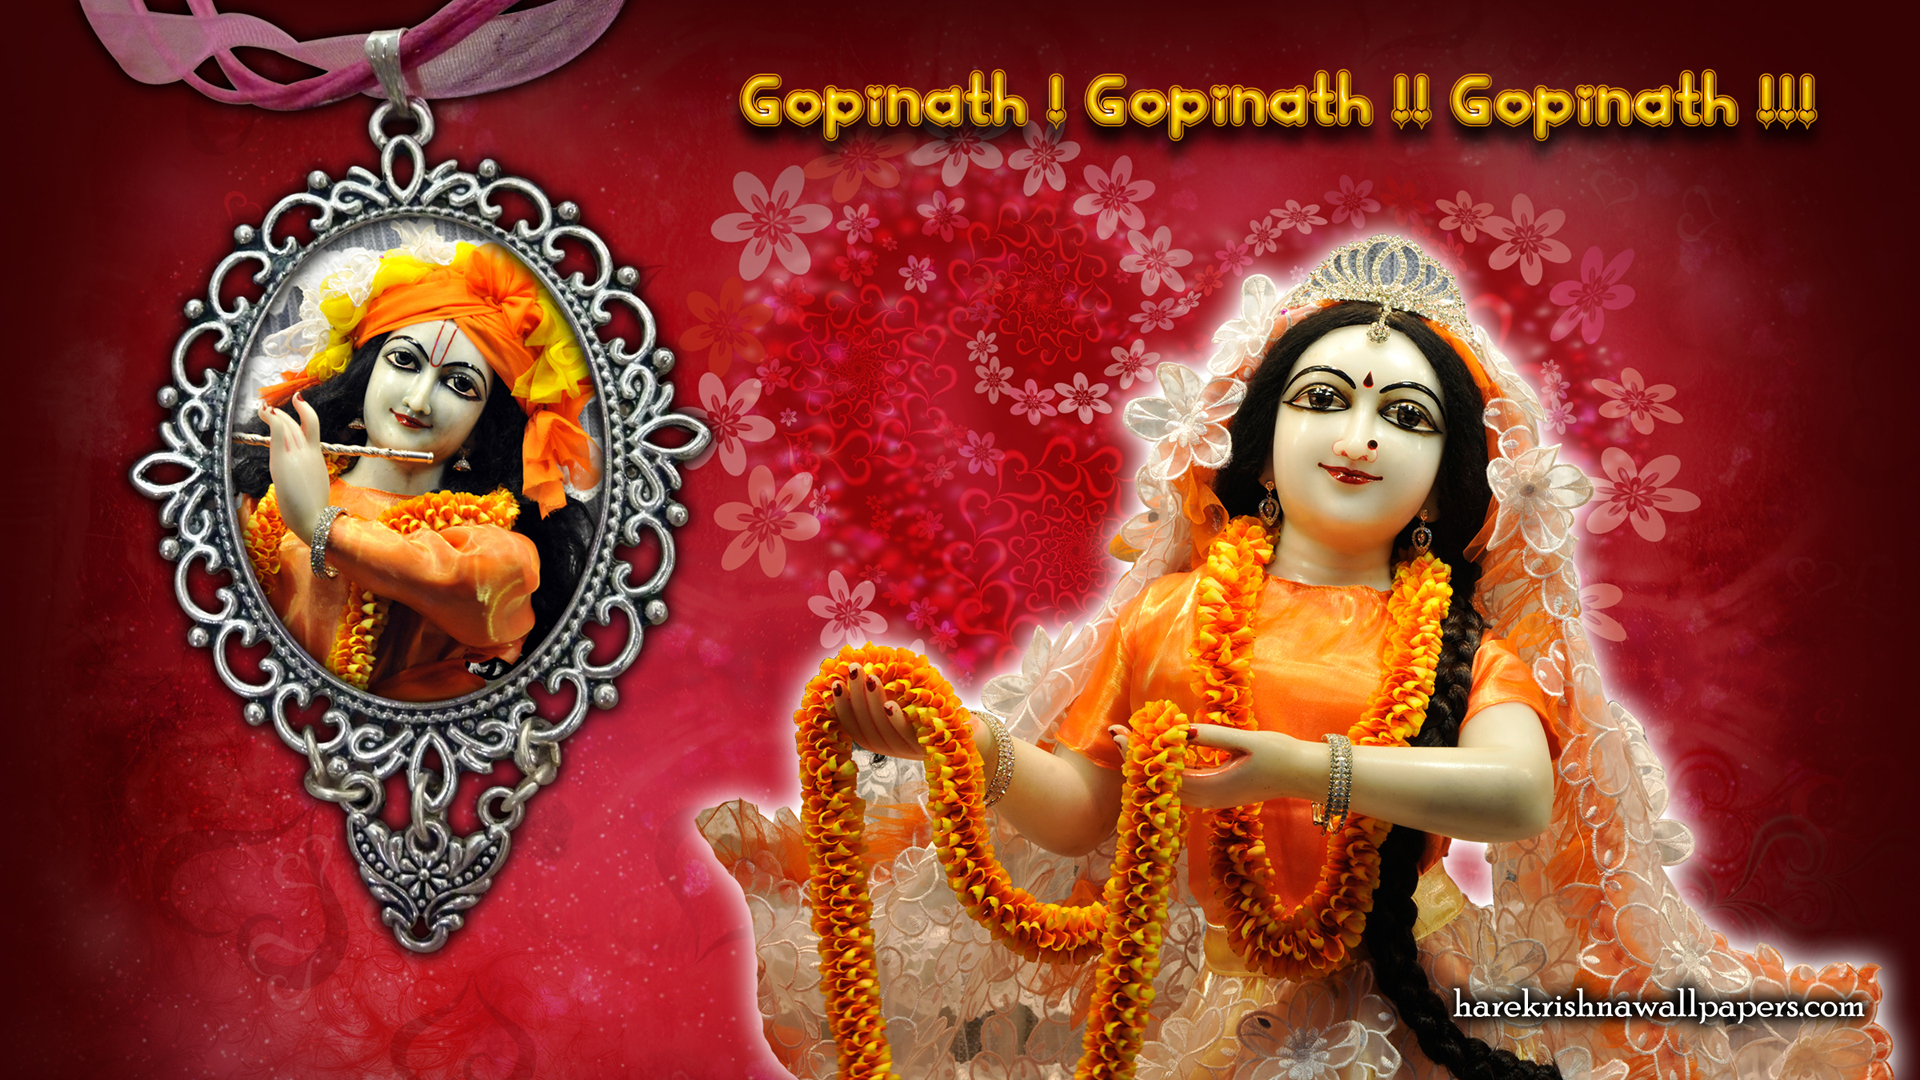 Sri Sri Radha Gopinath Wallpaper (001) Size 1920x1080 Download